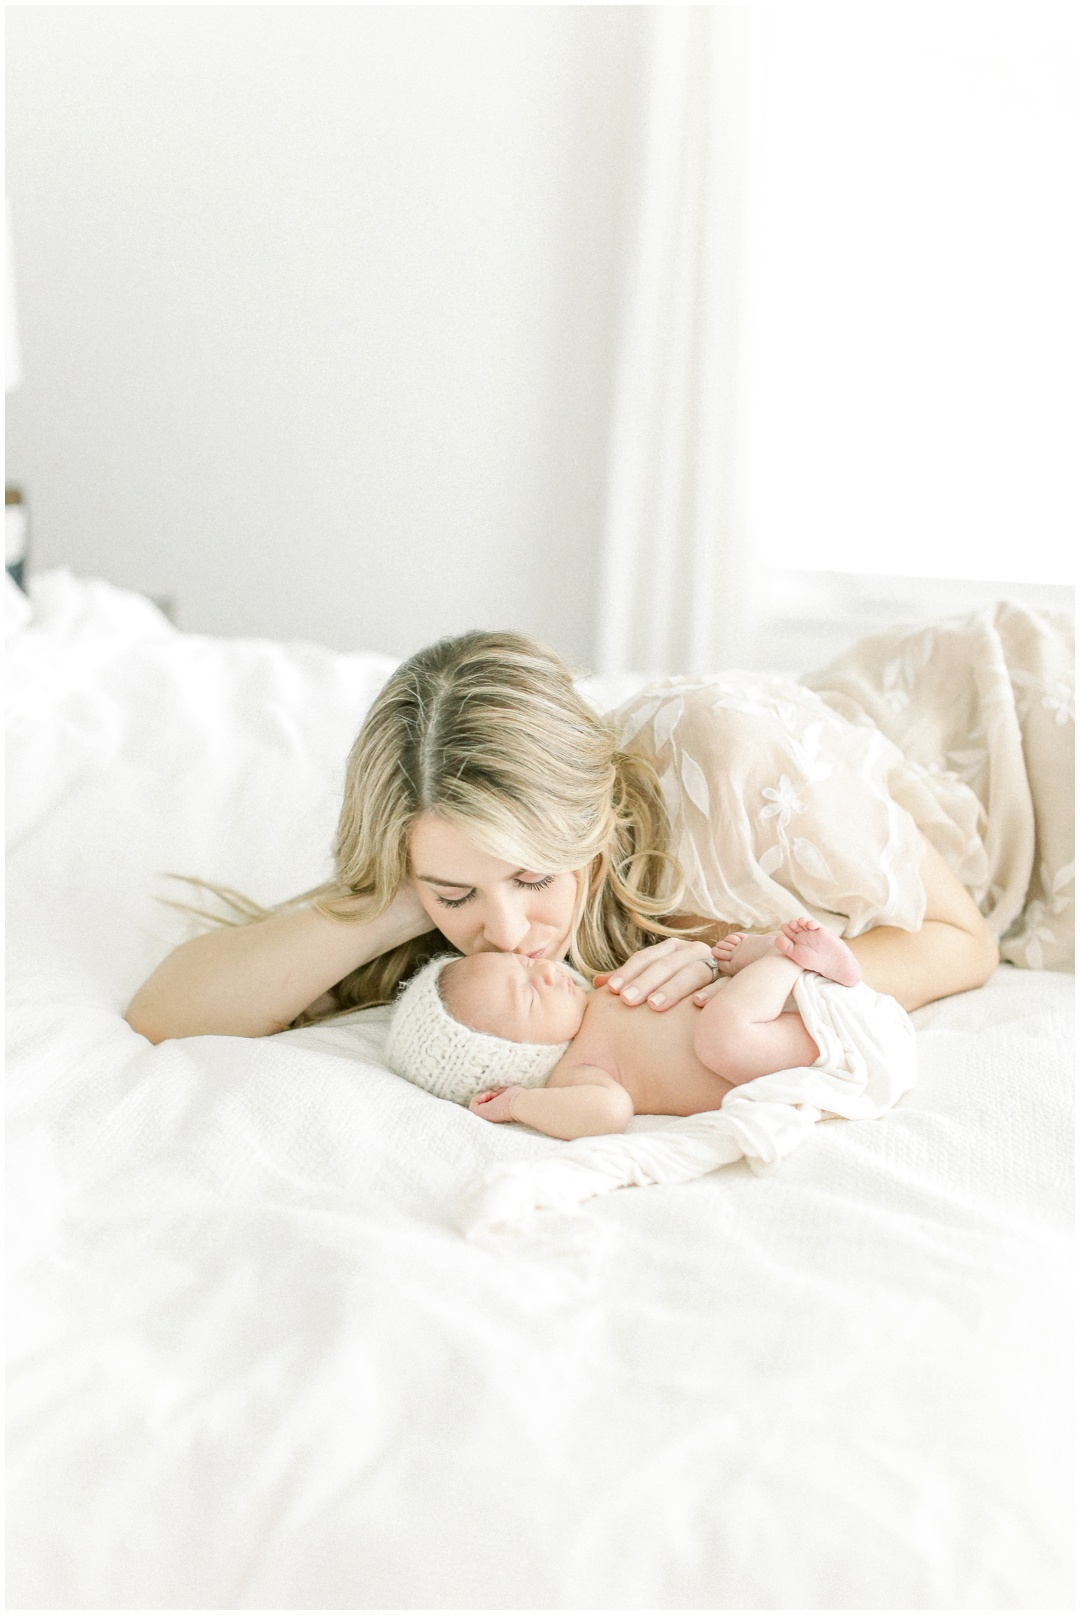 Newport_Beach_Newborn_Photographer_Newport_Beach_Maternity_Photographer_Orange_County_Family_Photographer_Cori_Kleckner_Photography_Huntington_Beach_Photographer__Erin_Dooney_Brandon_Dooney__Avery_Dooney_Family_Photos__2834.jpg